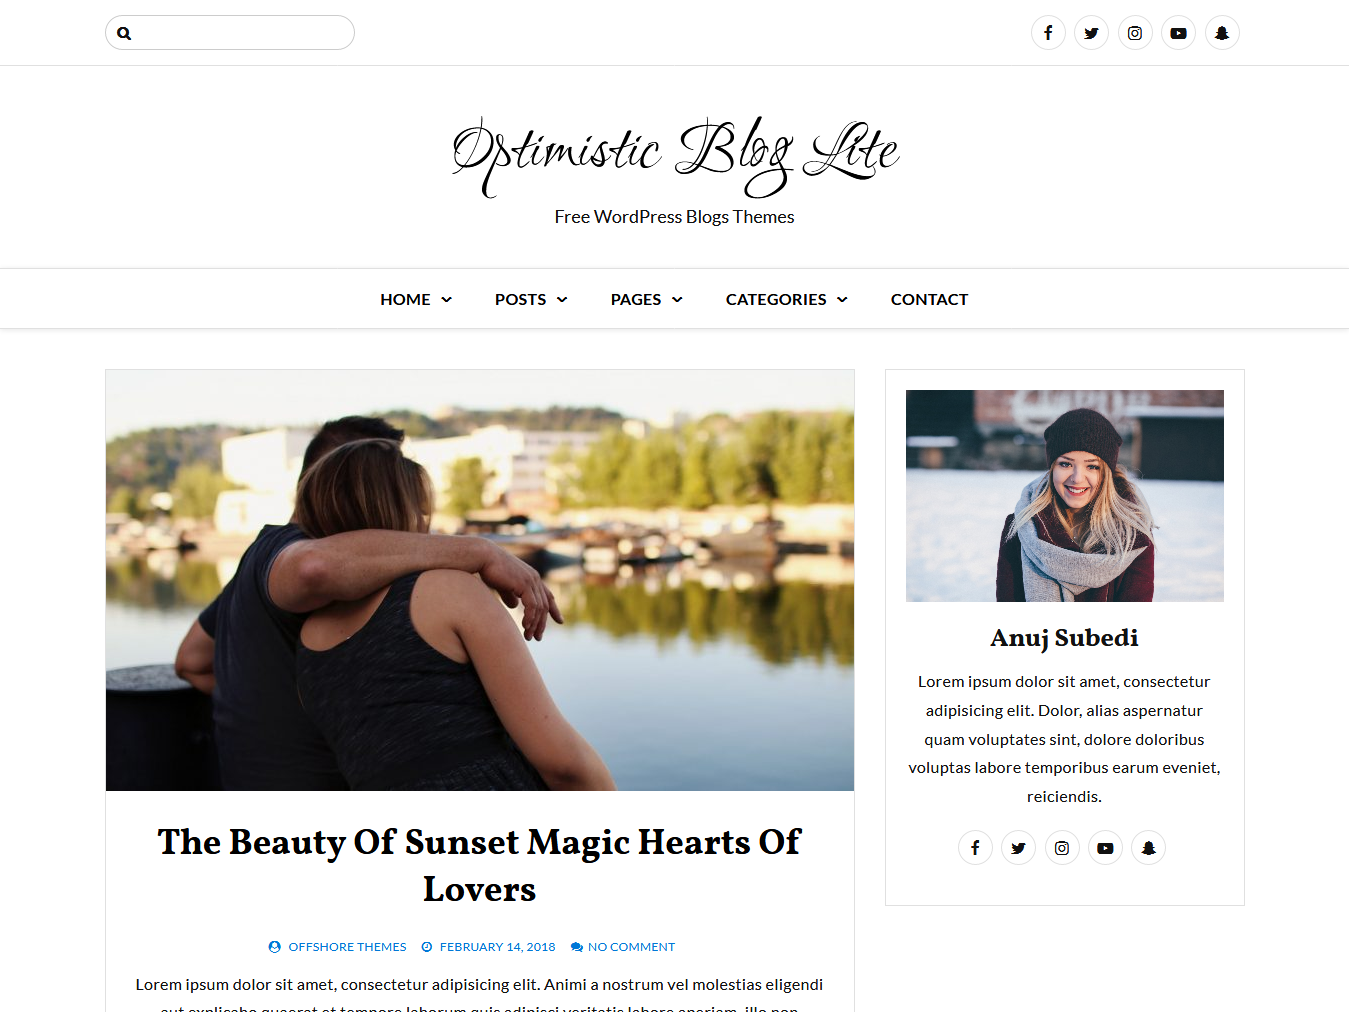 99 Best Free WordPress Blog Themes 2019 - AccessPress Themes